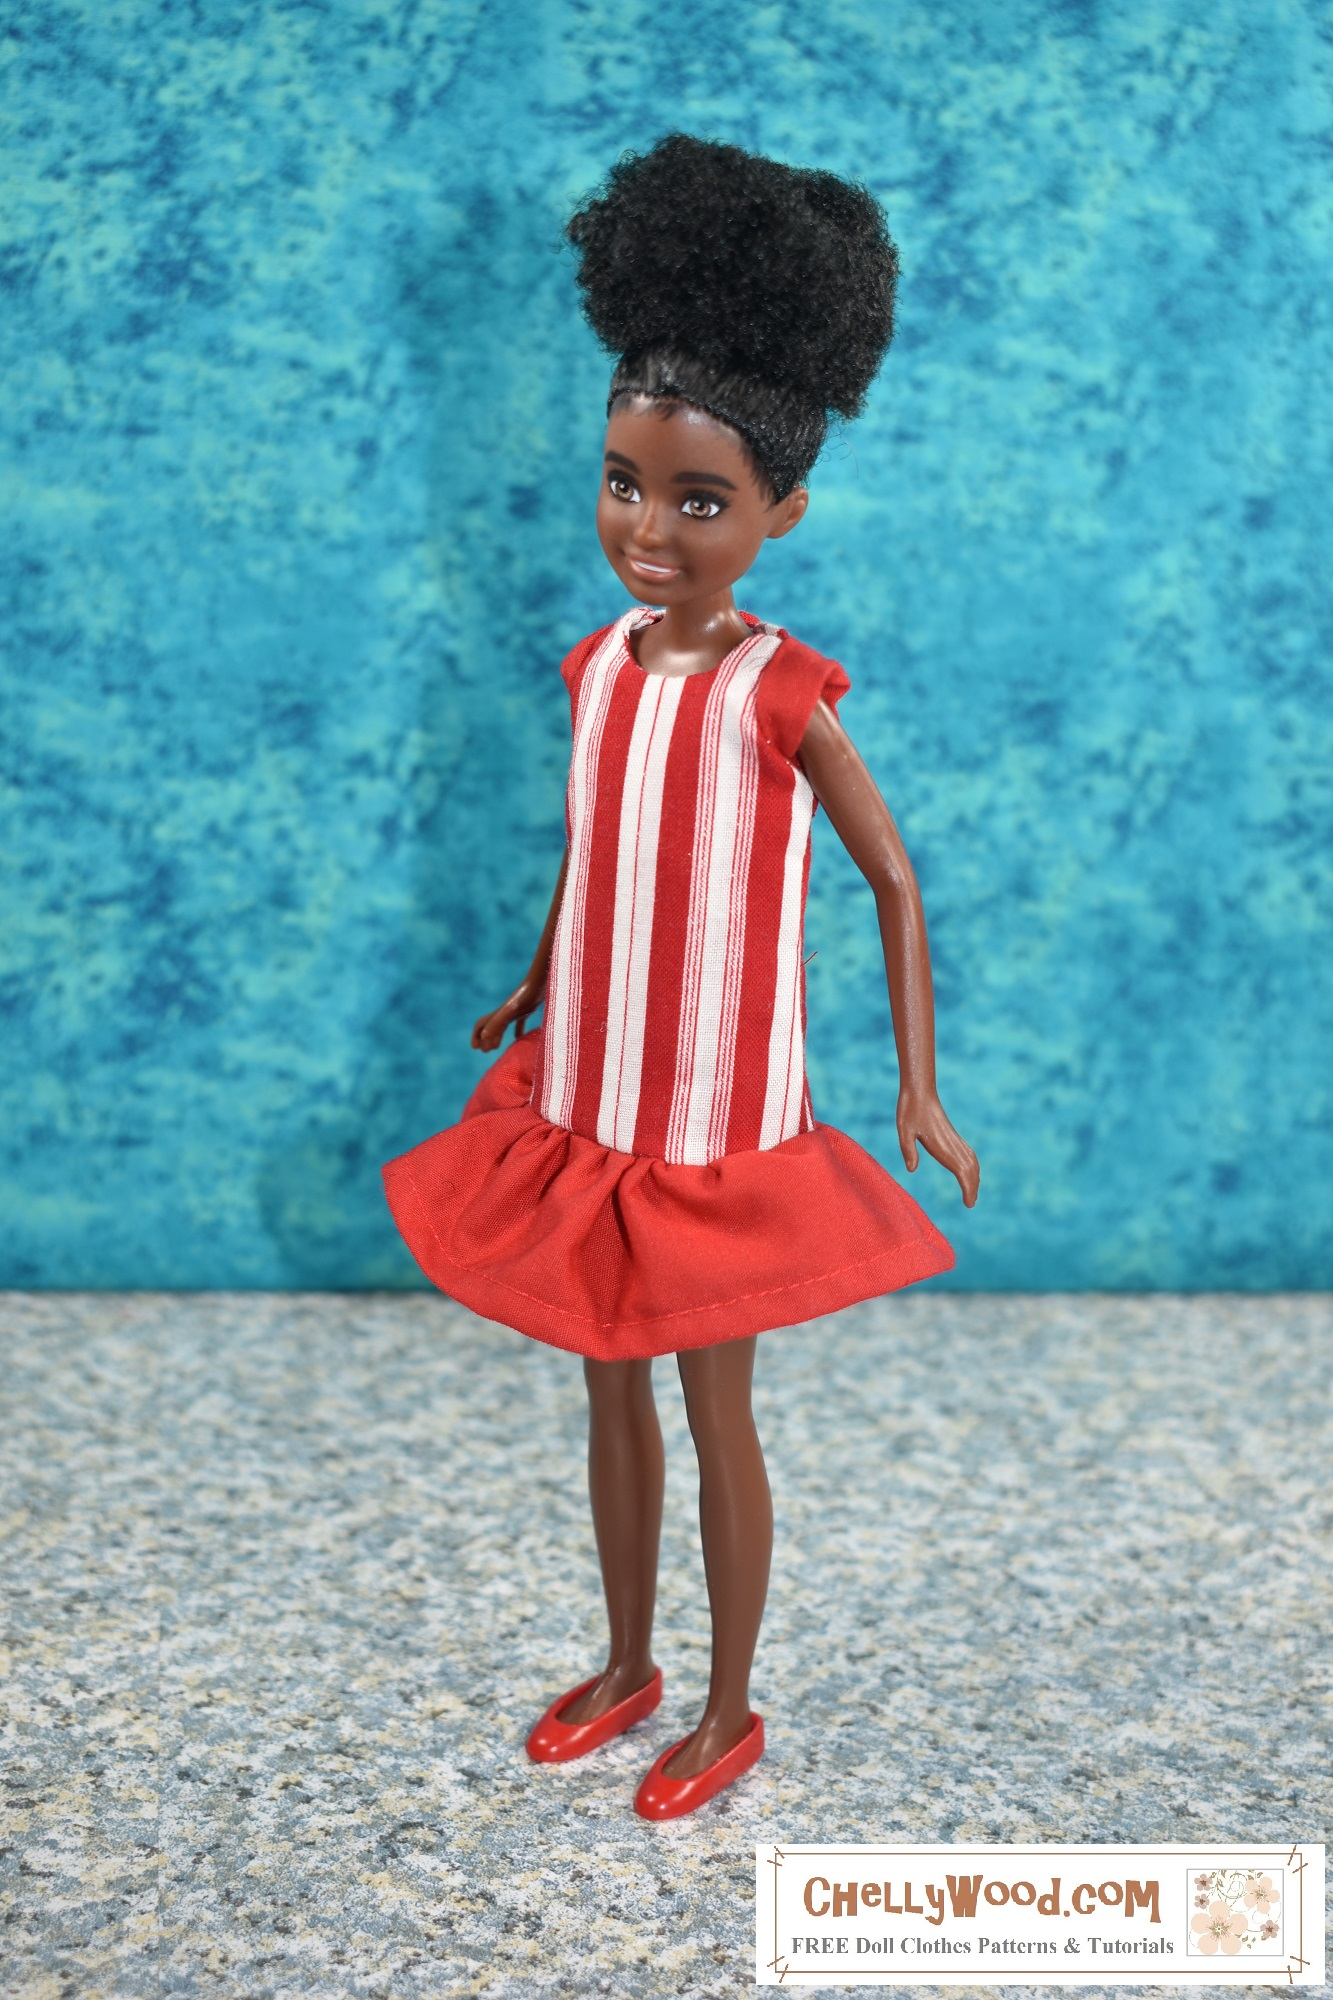 """Click on the link in the caption to navigate to the page where you can make this """"Peppermint Candy"""" dress for your Stacie sized doll, using free printable PDF sewing patterns and tutorials provided by ChellyWood.com. This photo shows Mattel's 9 inch African American Stacie doll wearing a handmade dress, designed and sewn by Chelly Wood, the doll clothing designer, YouTuber, and writer. The dress itself looks a lot like a peppermint candy, with red and white stripes running vertically. There's a solid red ruffle at the bottom of the dress, and this ruffle goes from the dress's dropped waist to just above Stacie's knee. There are also solid red cap sleeves. The doll wears tiny plastic red flat shoes. Her hair is gathered at the top in a very natural looking afro hair style. She looks to her right with her body facing right, and the background is a splotchy turquoise blue which contrasts nicely with the red and white of the handmade dress. For the free printable sewing patterns and tutorial videos to make this dress, please go to ChellyWood.com"""